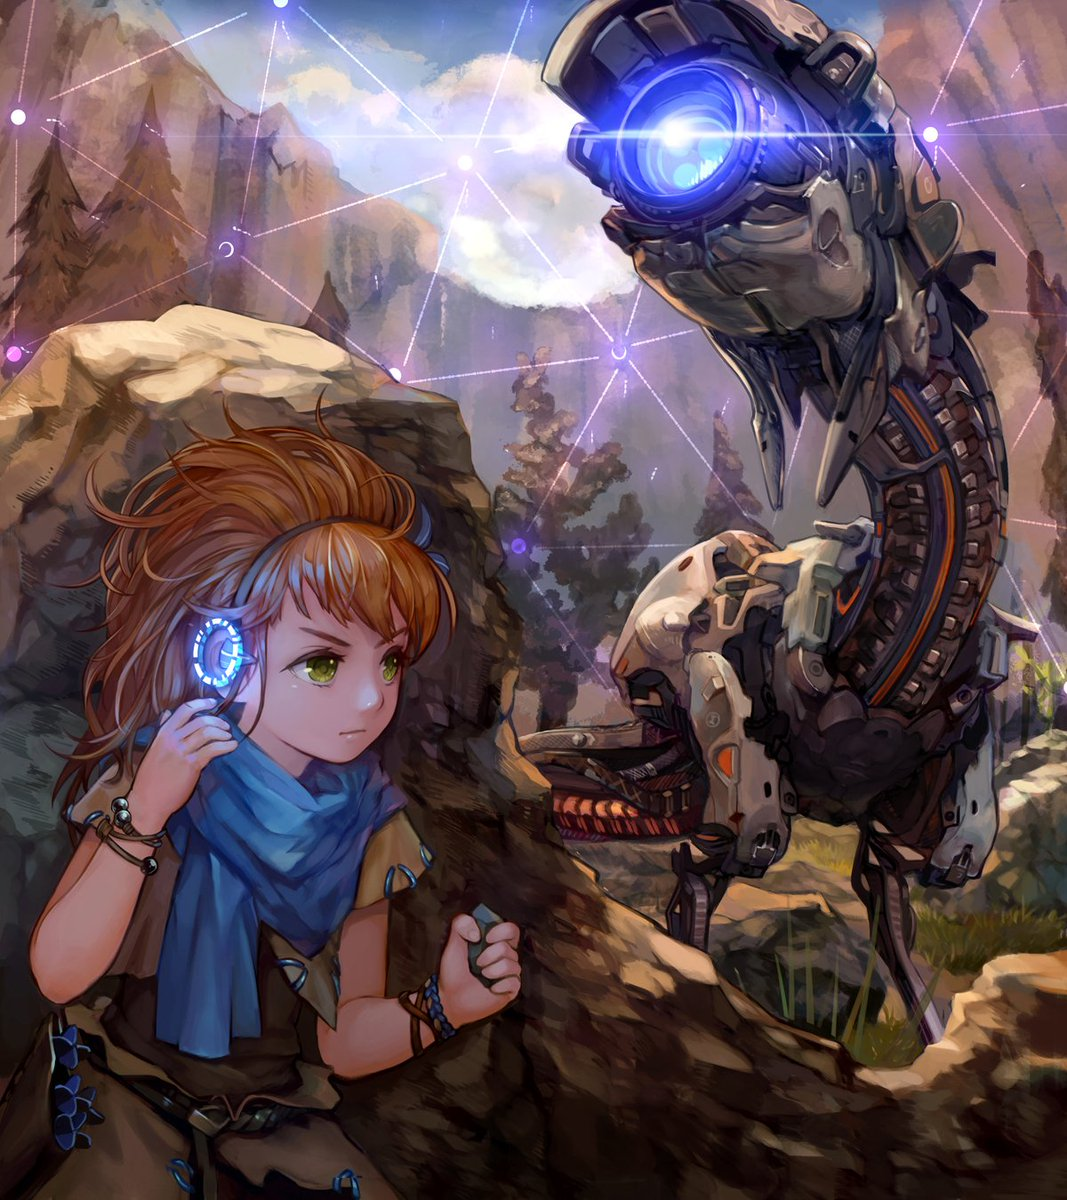 The Art Of Video Games On Twitter The Fanart Of Horizonzerodawn Young Aloy Artist Lf Pixiv